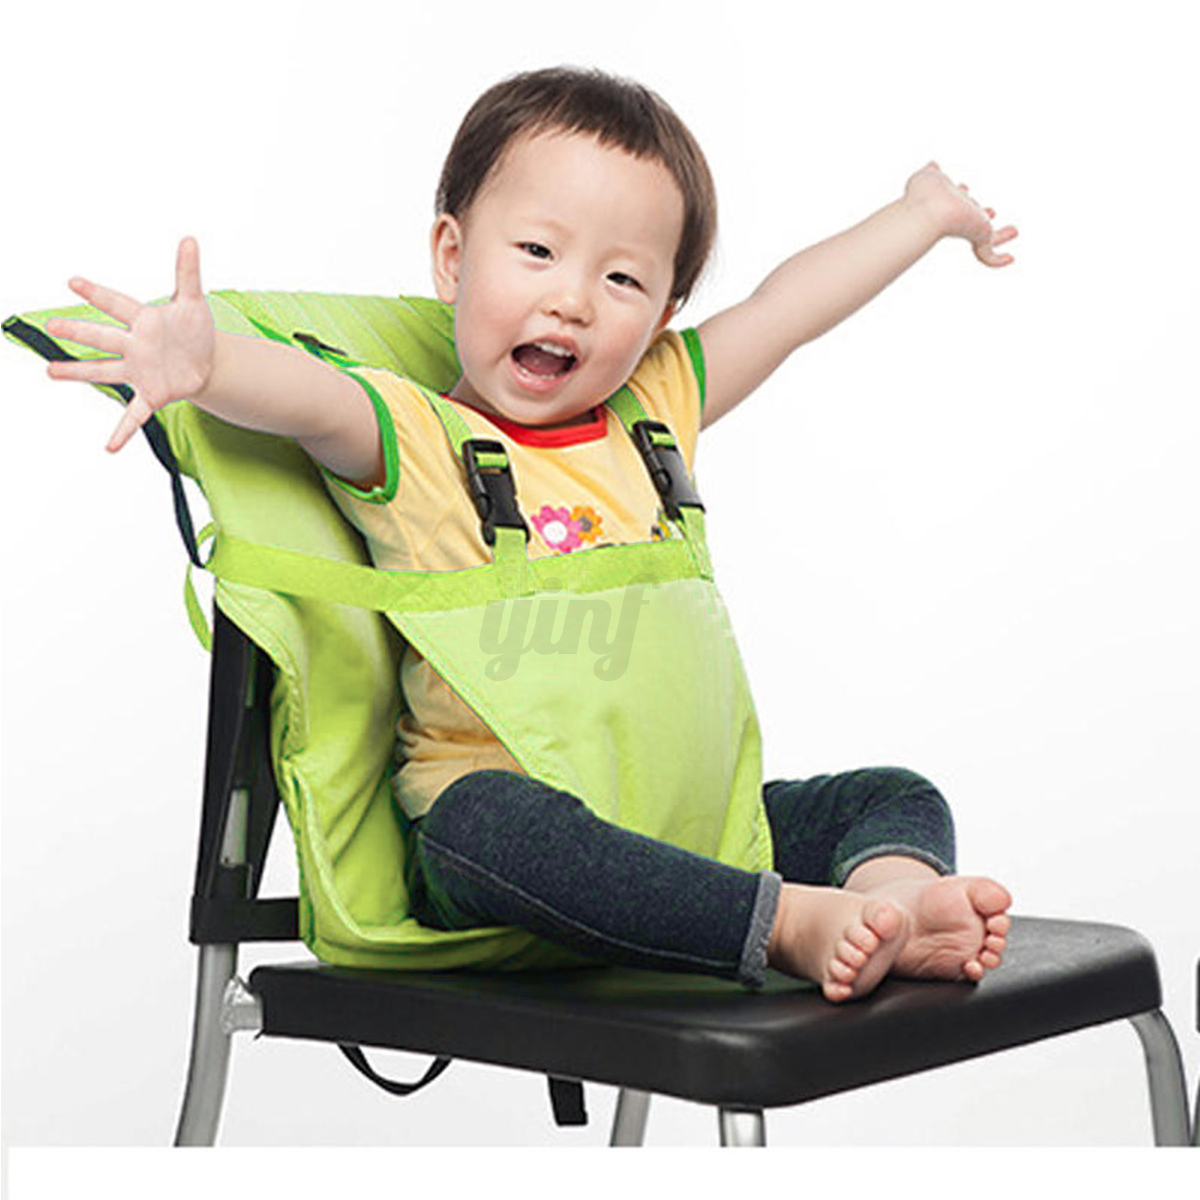 portable baby infant kids feeding high chair harness seat safety belt cover ebay. Black Bedroom Furniture Sets. Home Design Ideas